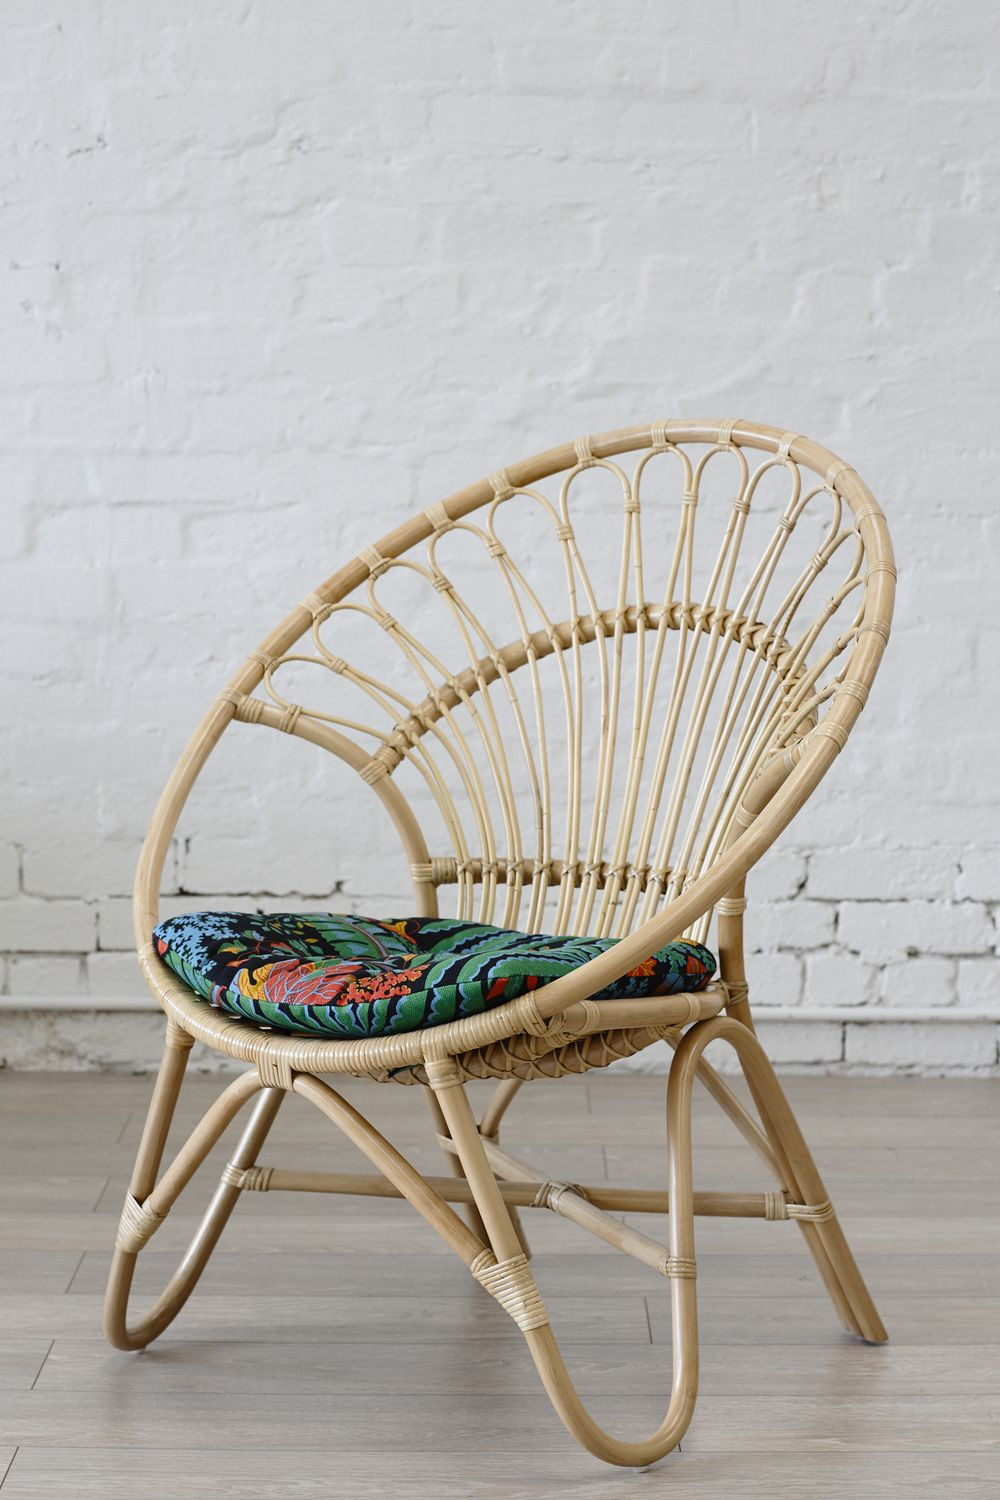 Rattan Round Chair Natural The Family Love Tree Bamboo Chair